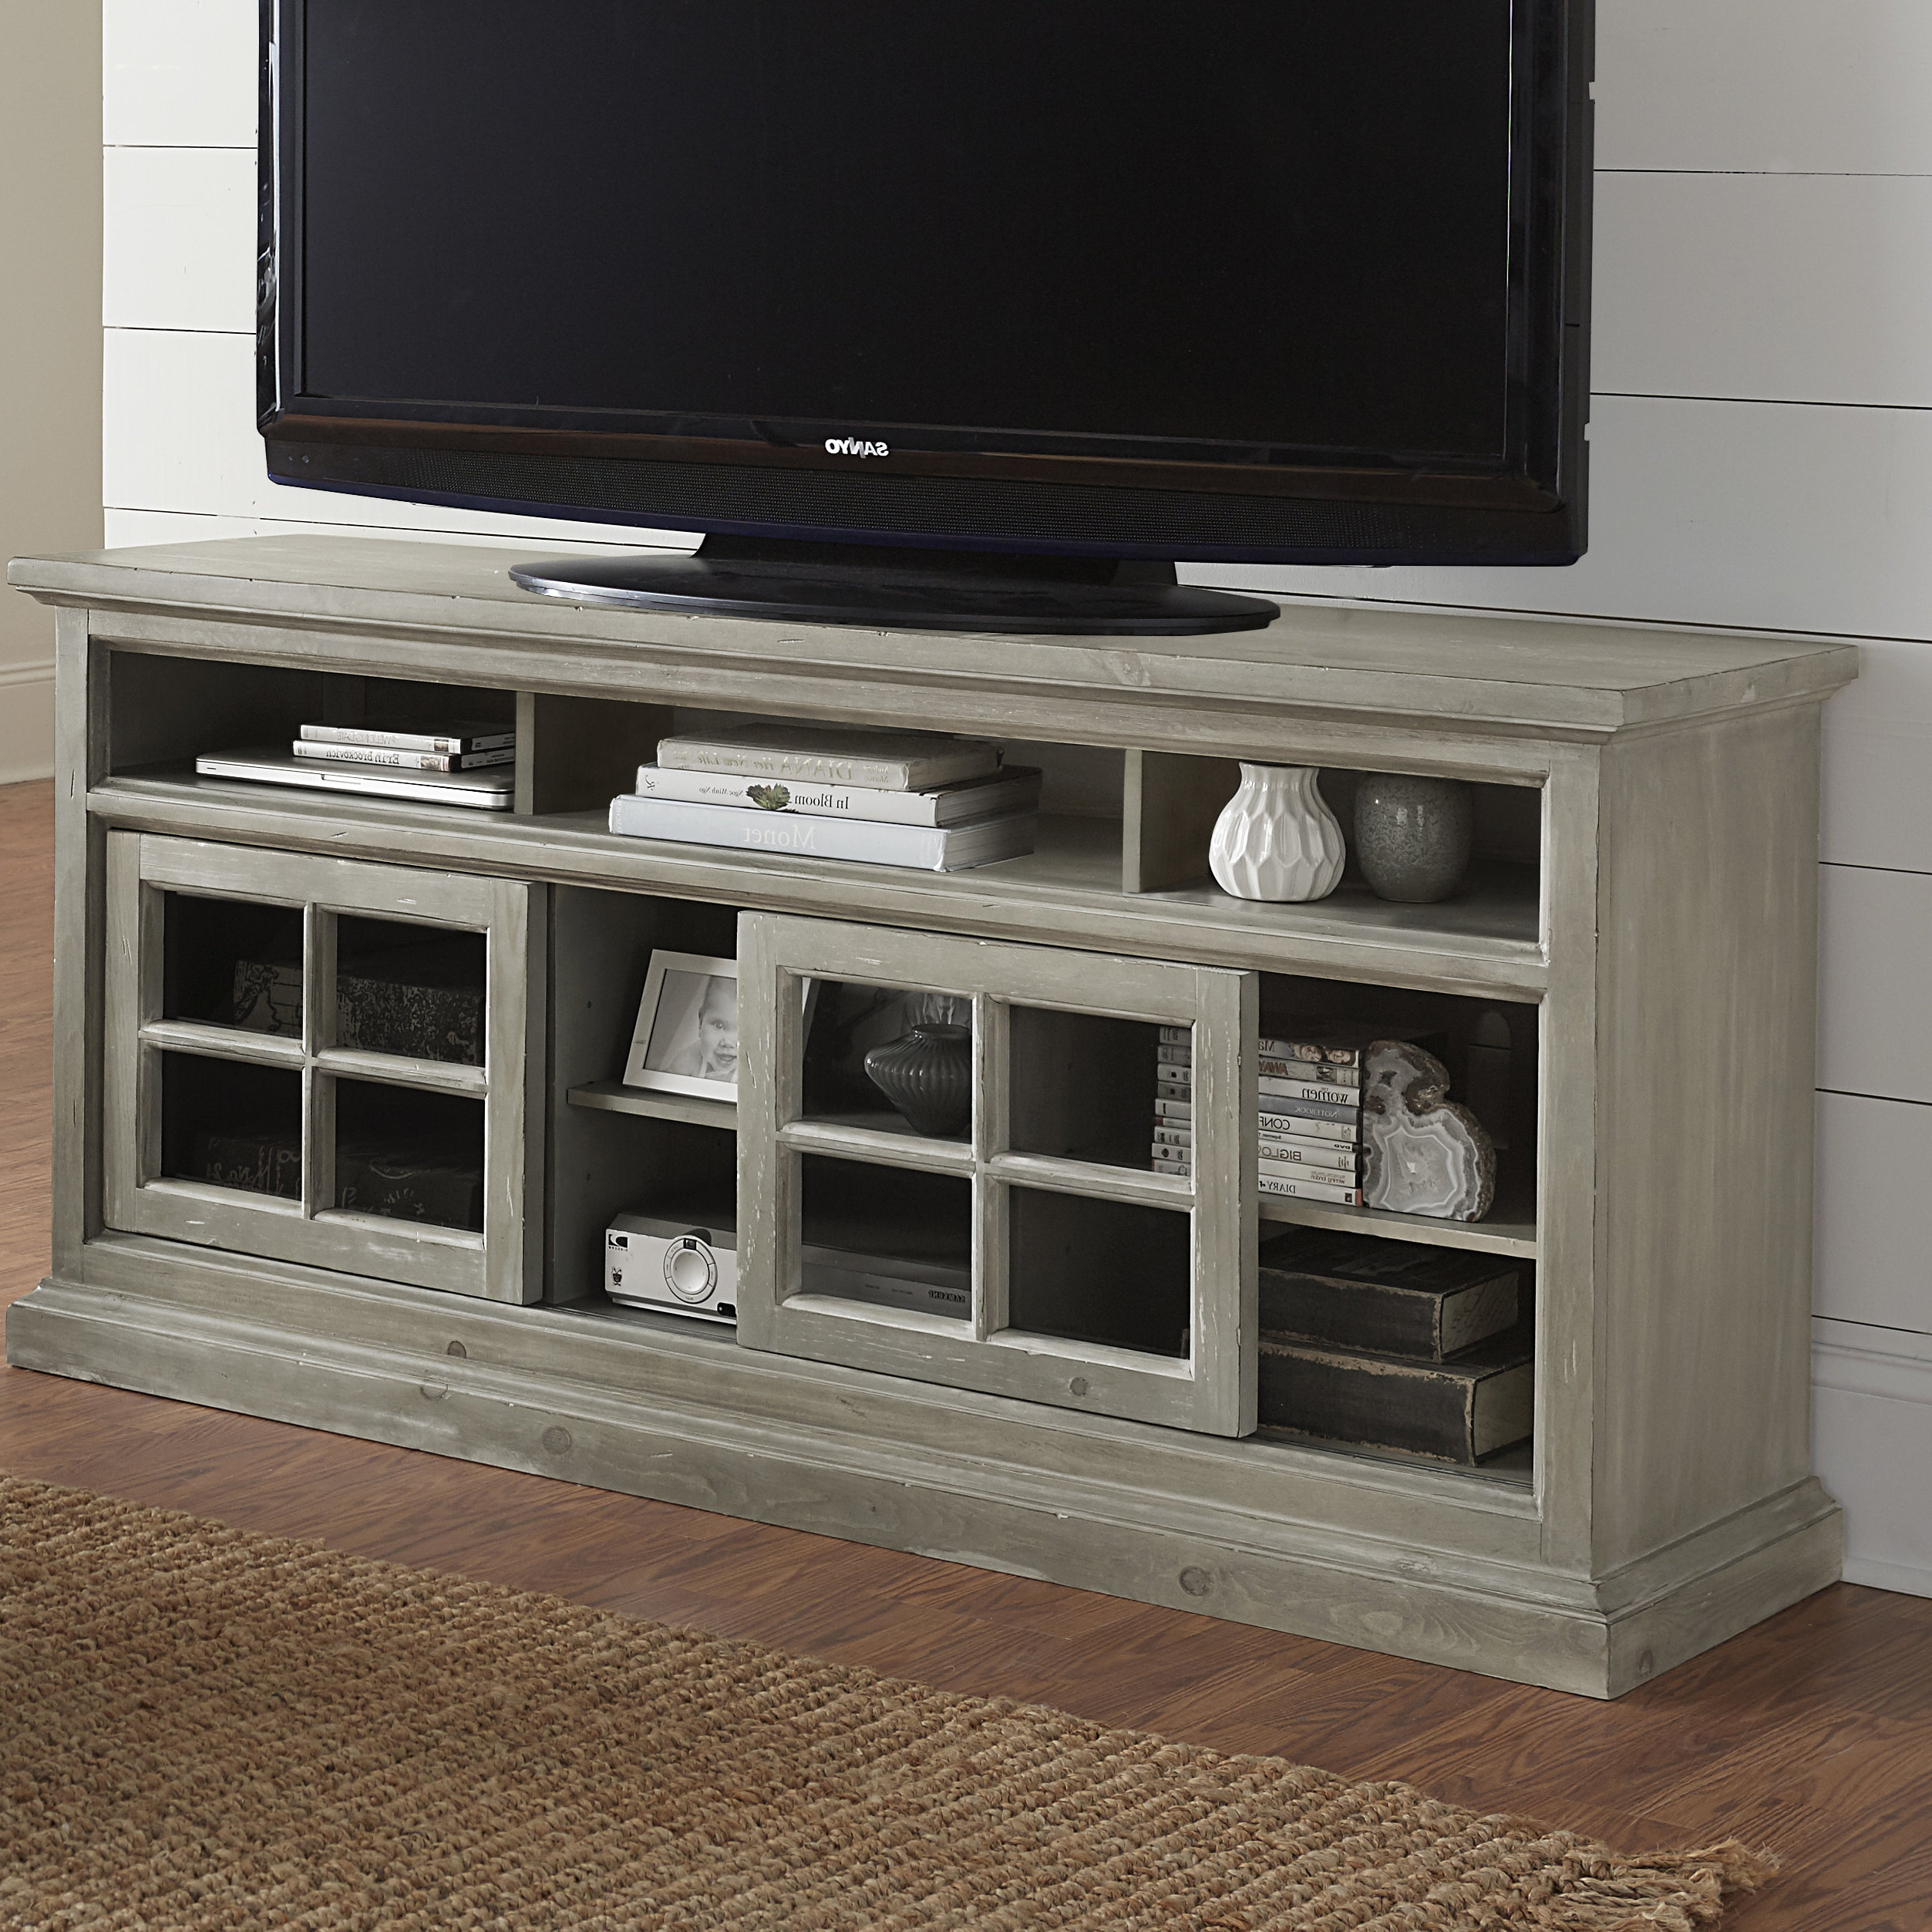 60 69 Inches Tv Stands | Birch Lane For Edwin Grey 64 Inch Tv Stands (Gallery 7 of 20)